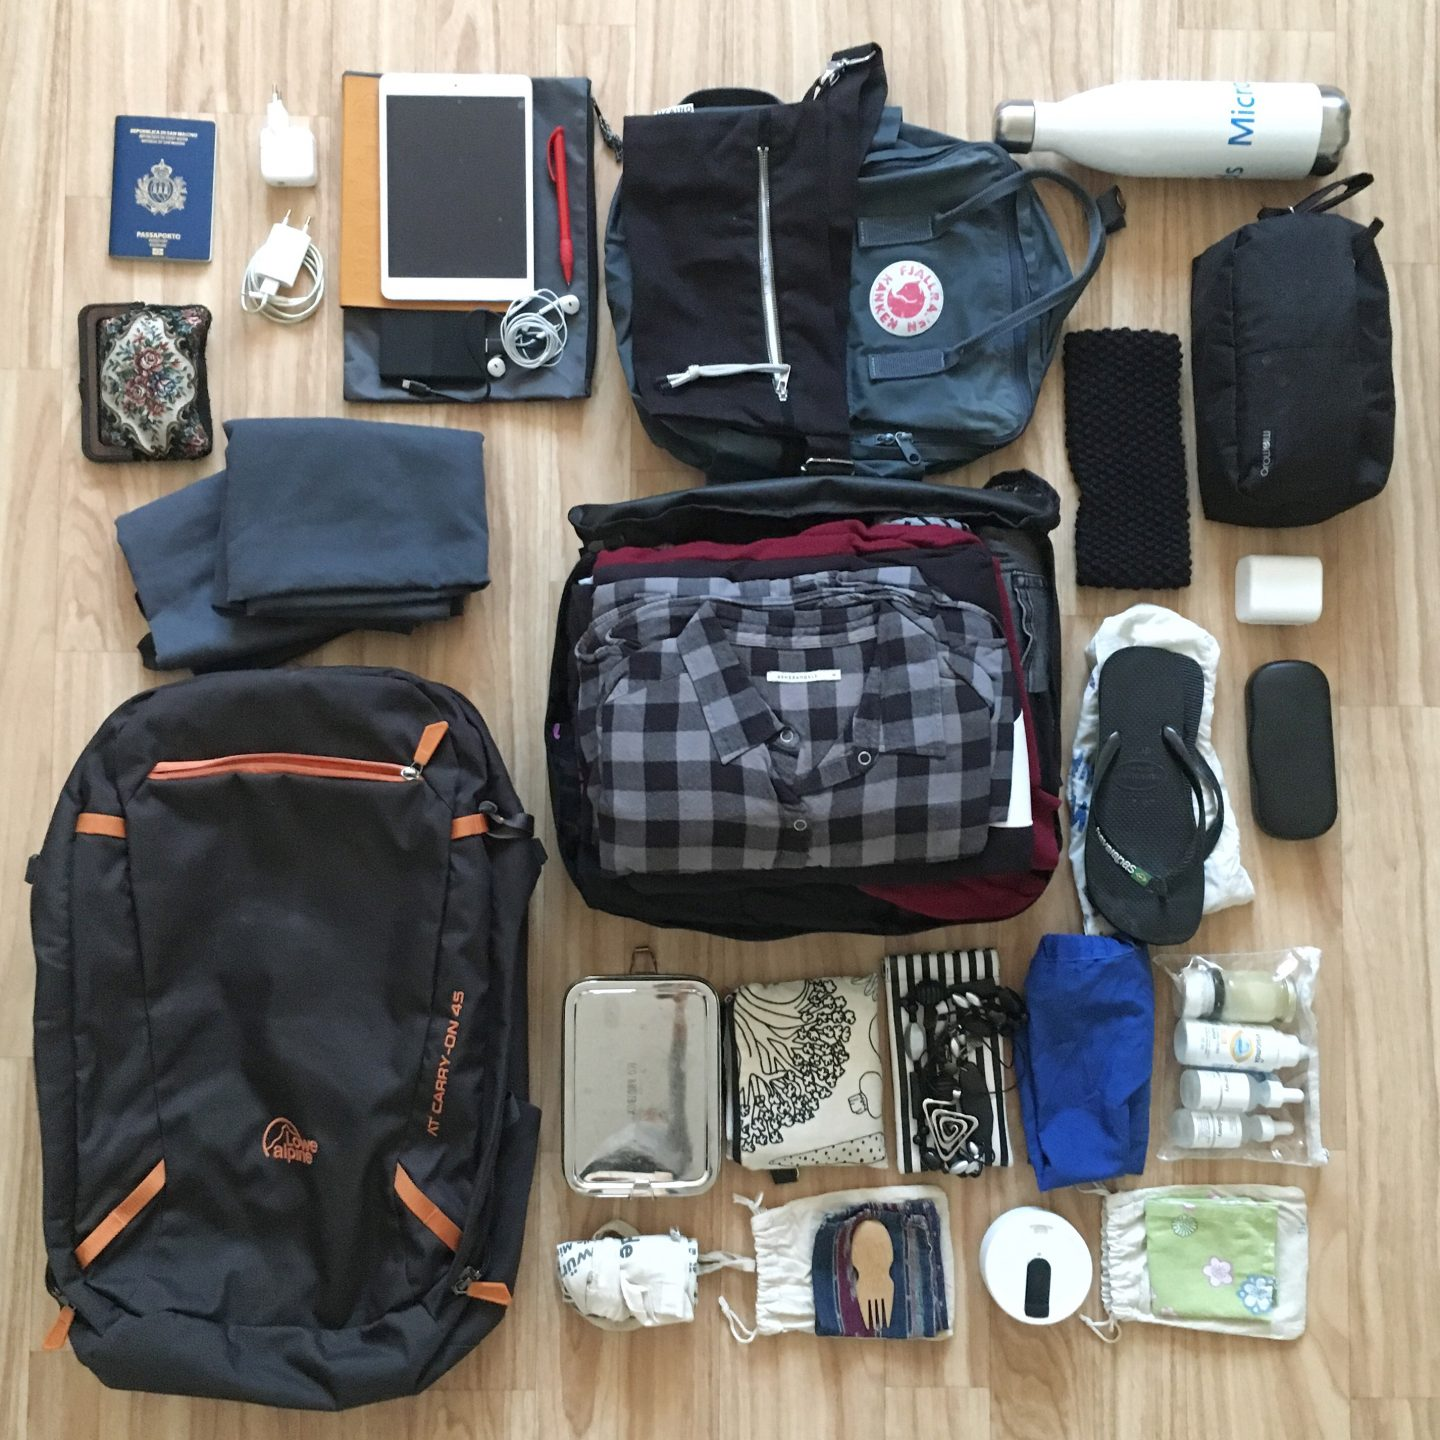 What I've packed for 17 days of solo travel in Ireland (carry on only!)